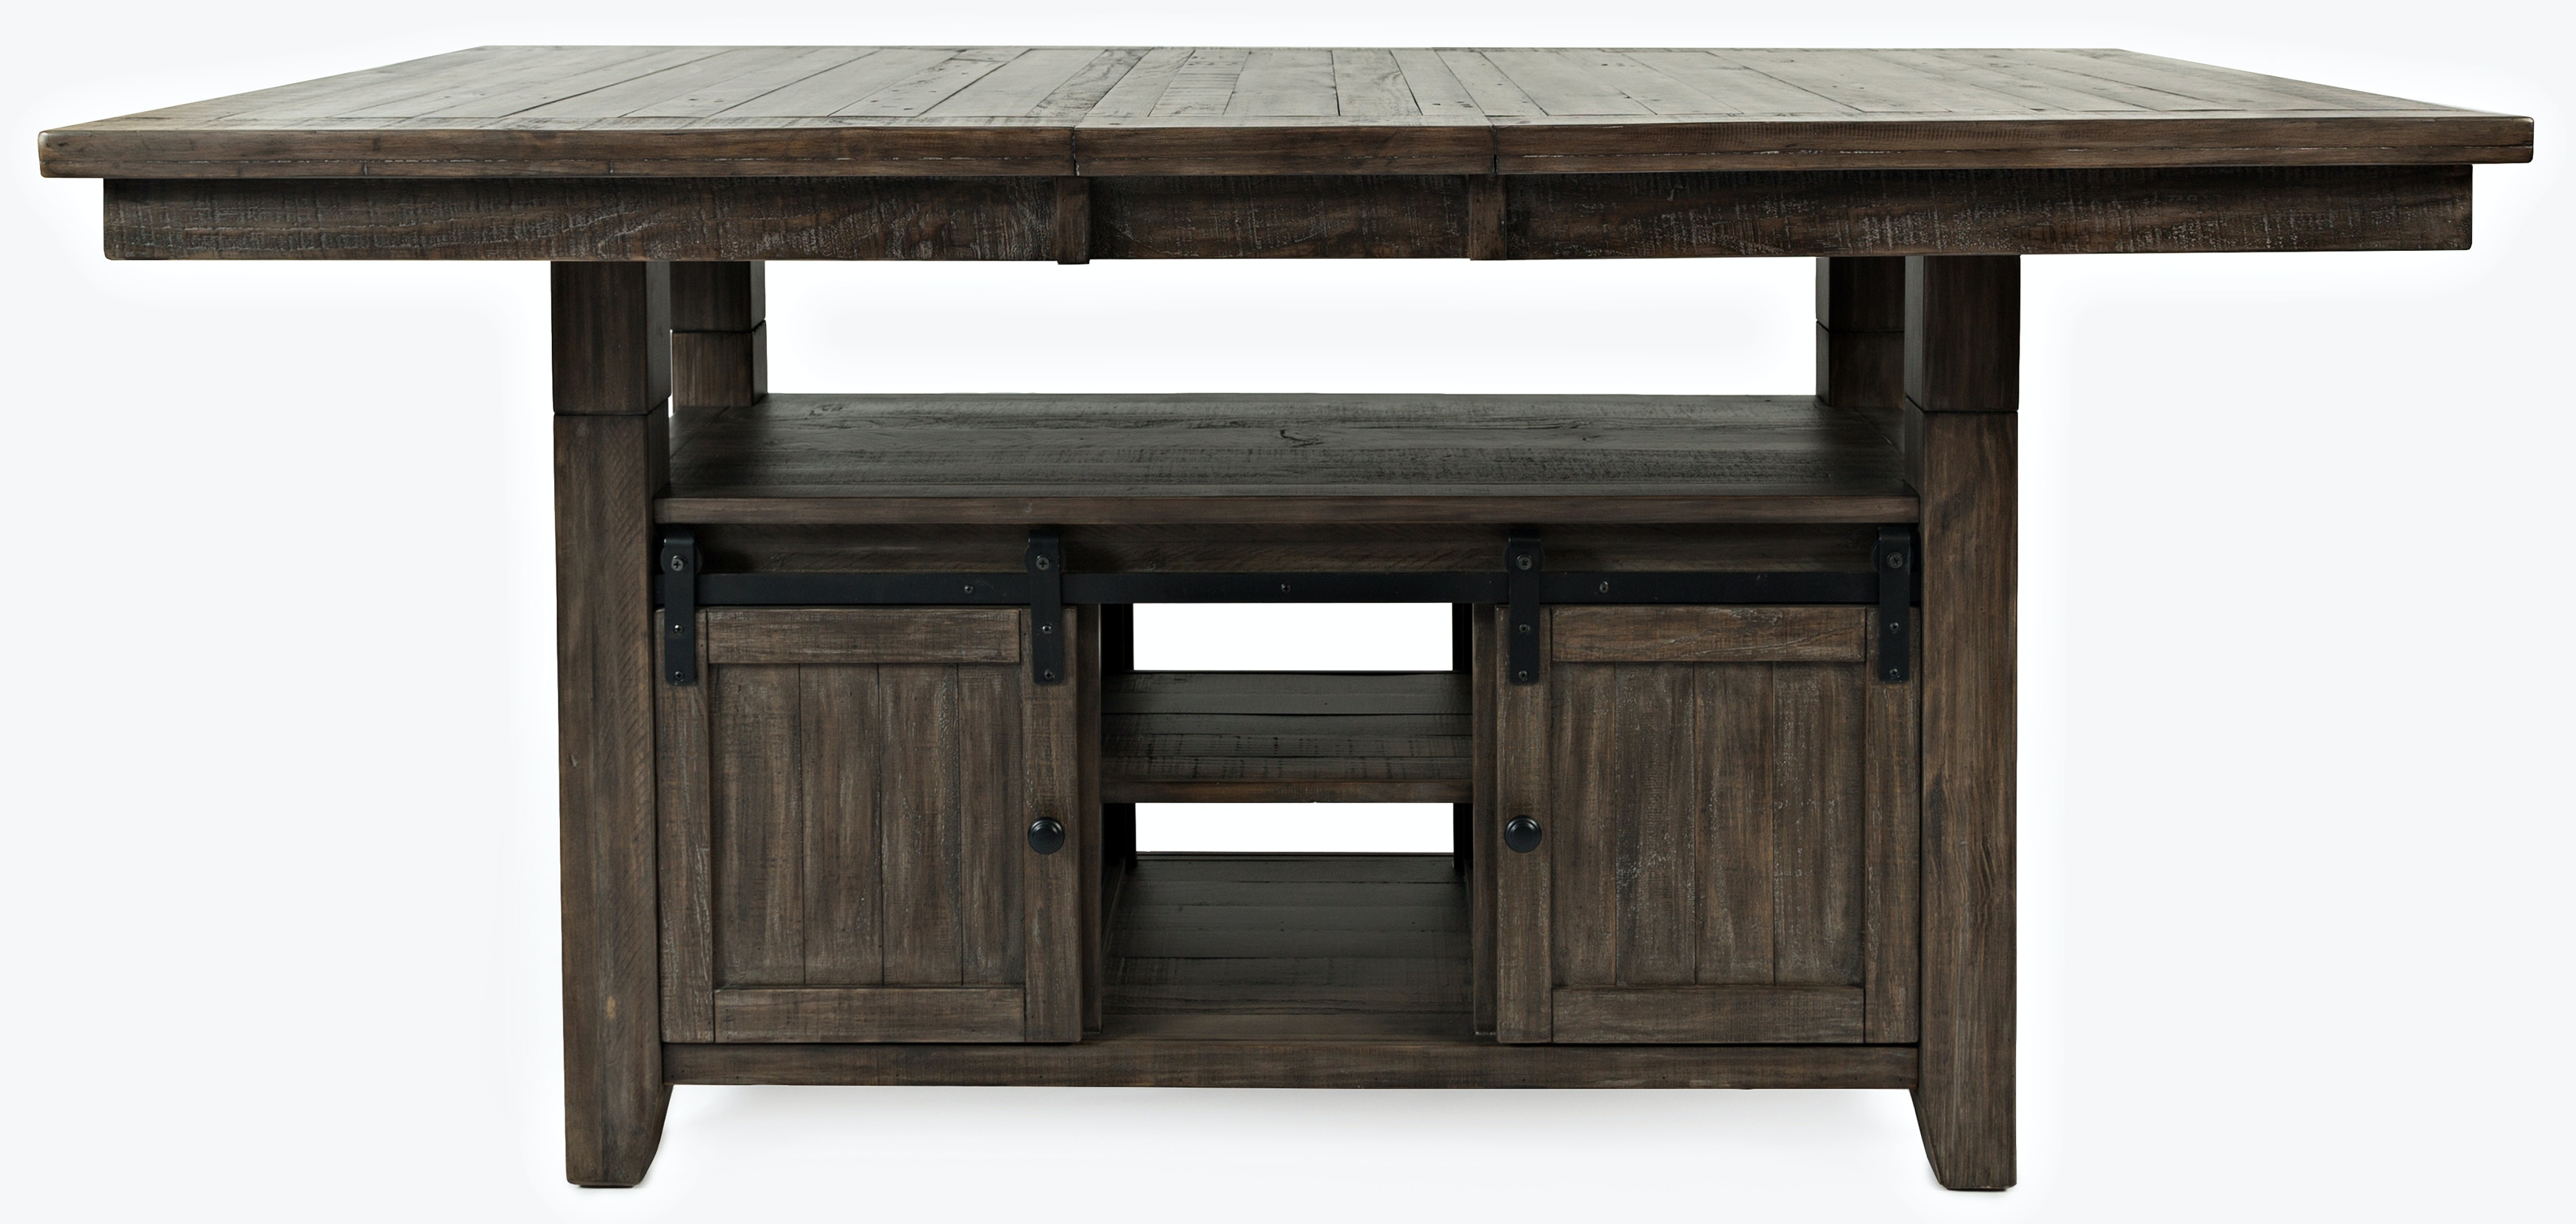 Superieur Ginger High Low Dining Table   BARNWOOD KT:88567